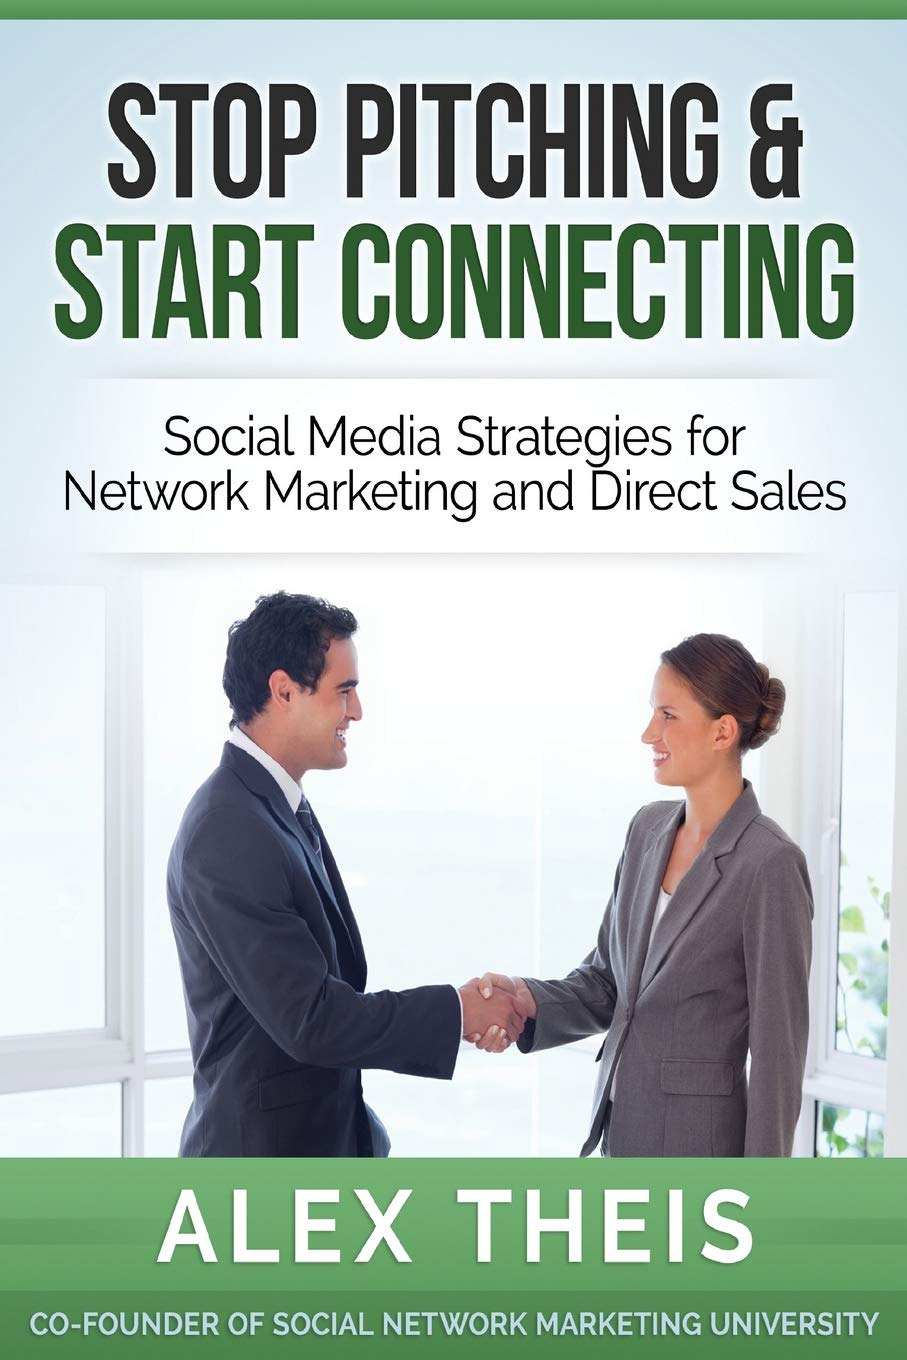 Download Stop Pitching & Start Connecting: Social Media Strategies for Network Marketing and Direct Sales PDF